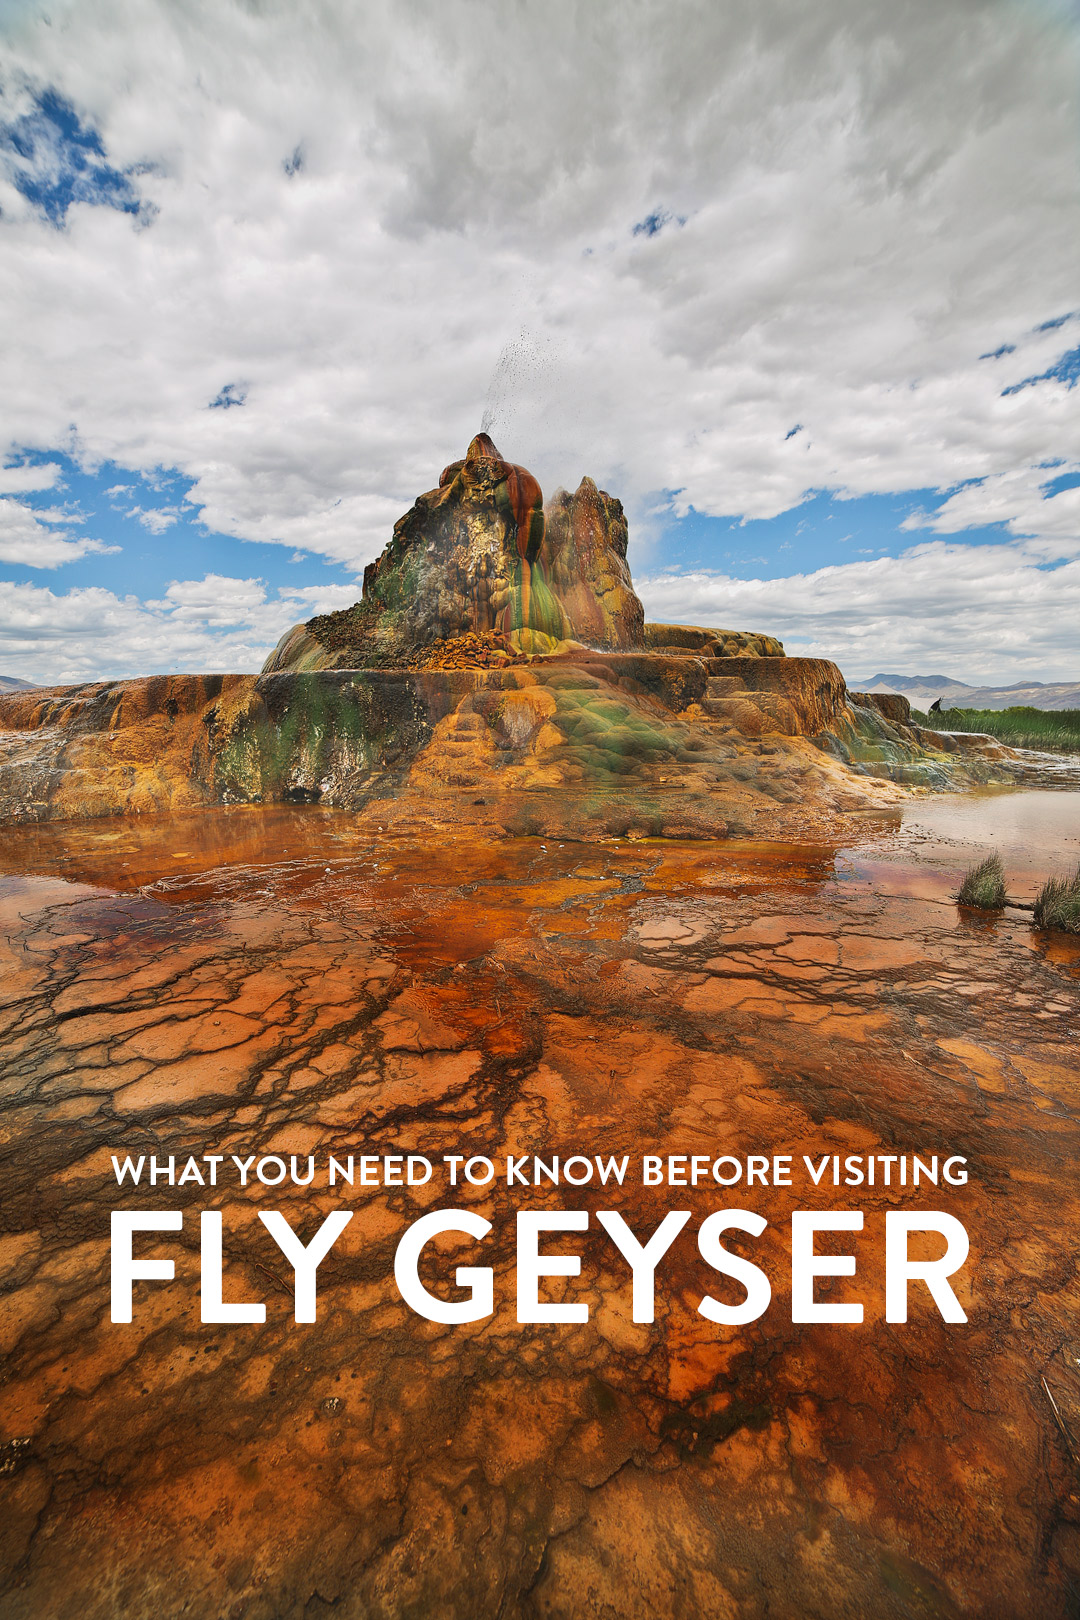 Want to visit the Fly Geyser, Nevada's natural wonder? Save this pin and click through to find out how to book a rare tour of this beautiful phenomenon. Up until recently, no one was allowed to visit the fly ranch geyser property, but now that Burning Man owns it, you can go on nature walk tours to learn more the beautiful black rock desert, fly geyser tour, art installations, and the hot springs. // Local Adventurer #travelnevada #dfmi #nevada #flygeyser #blackrockdesert #desert